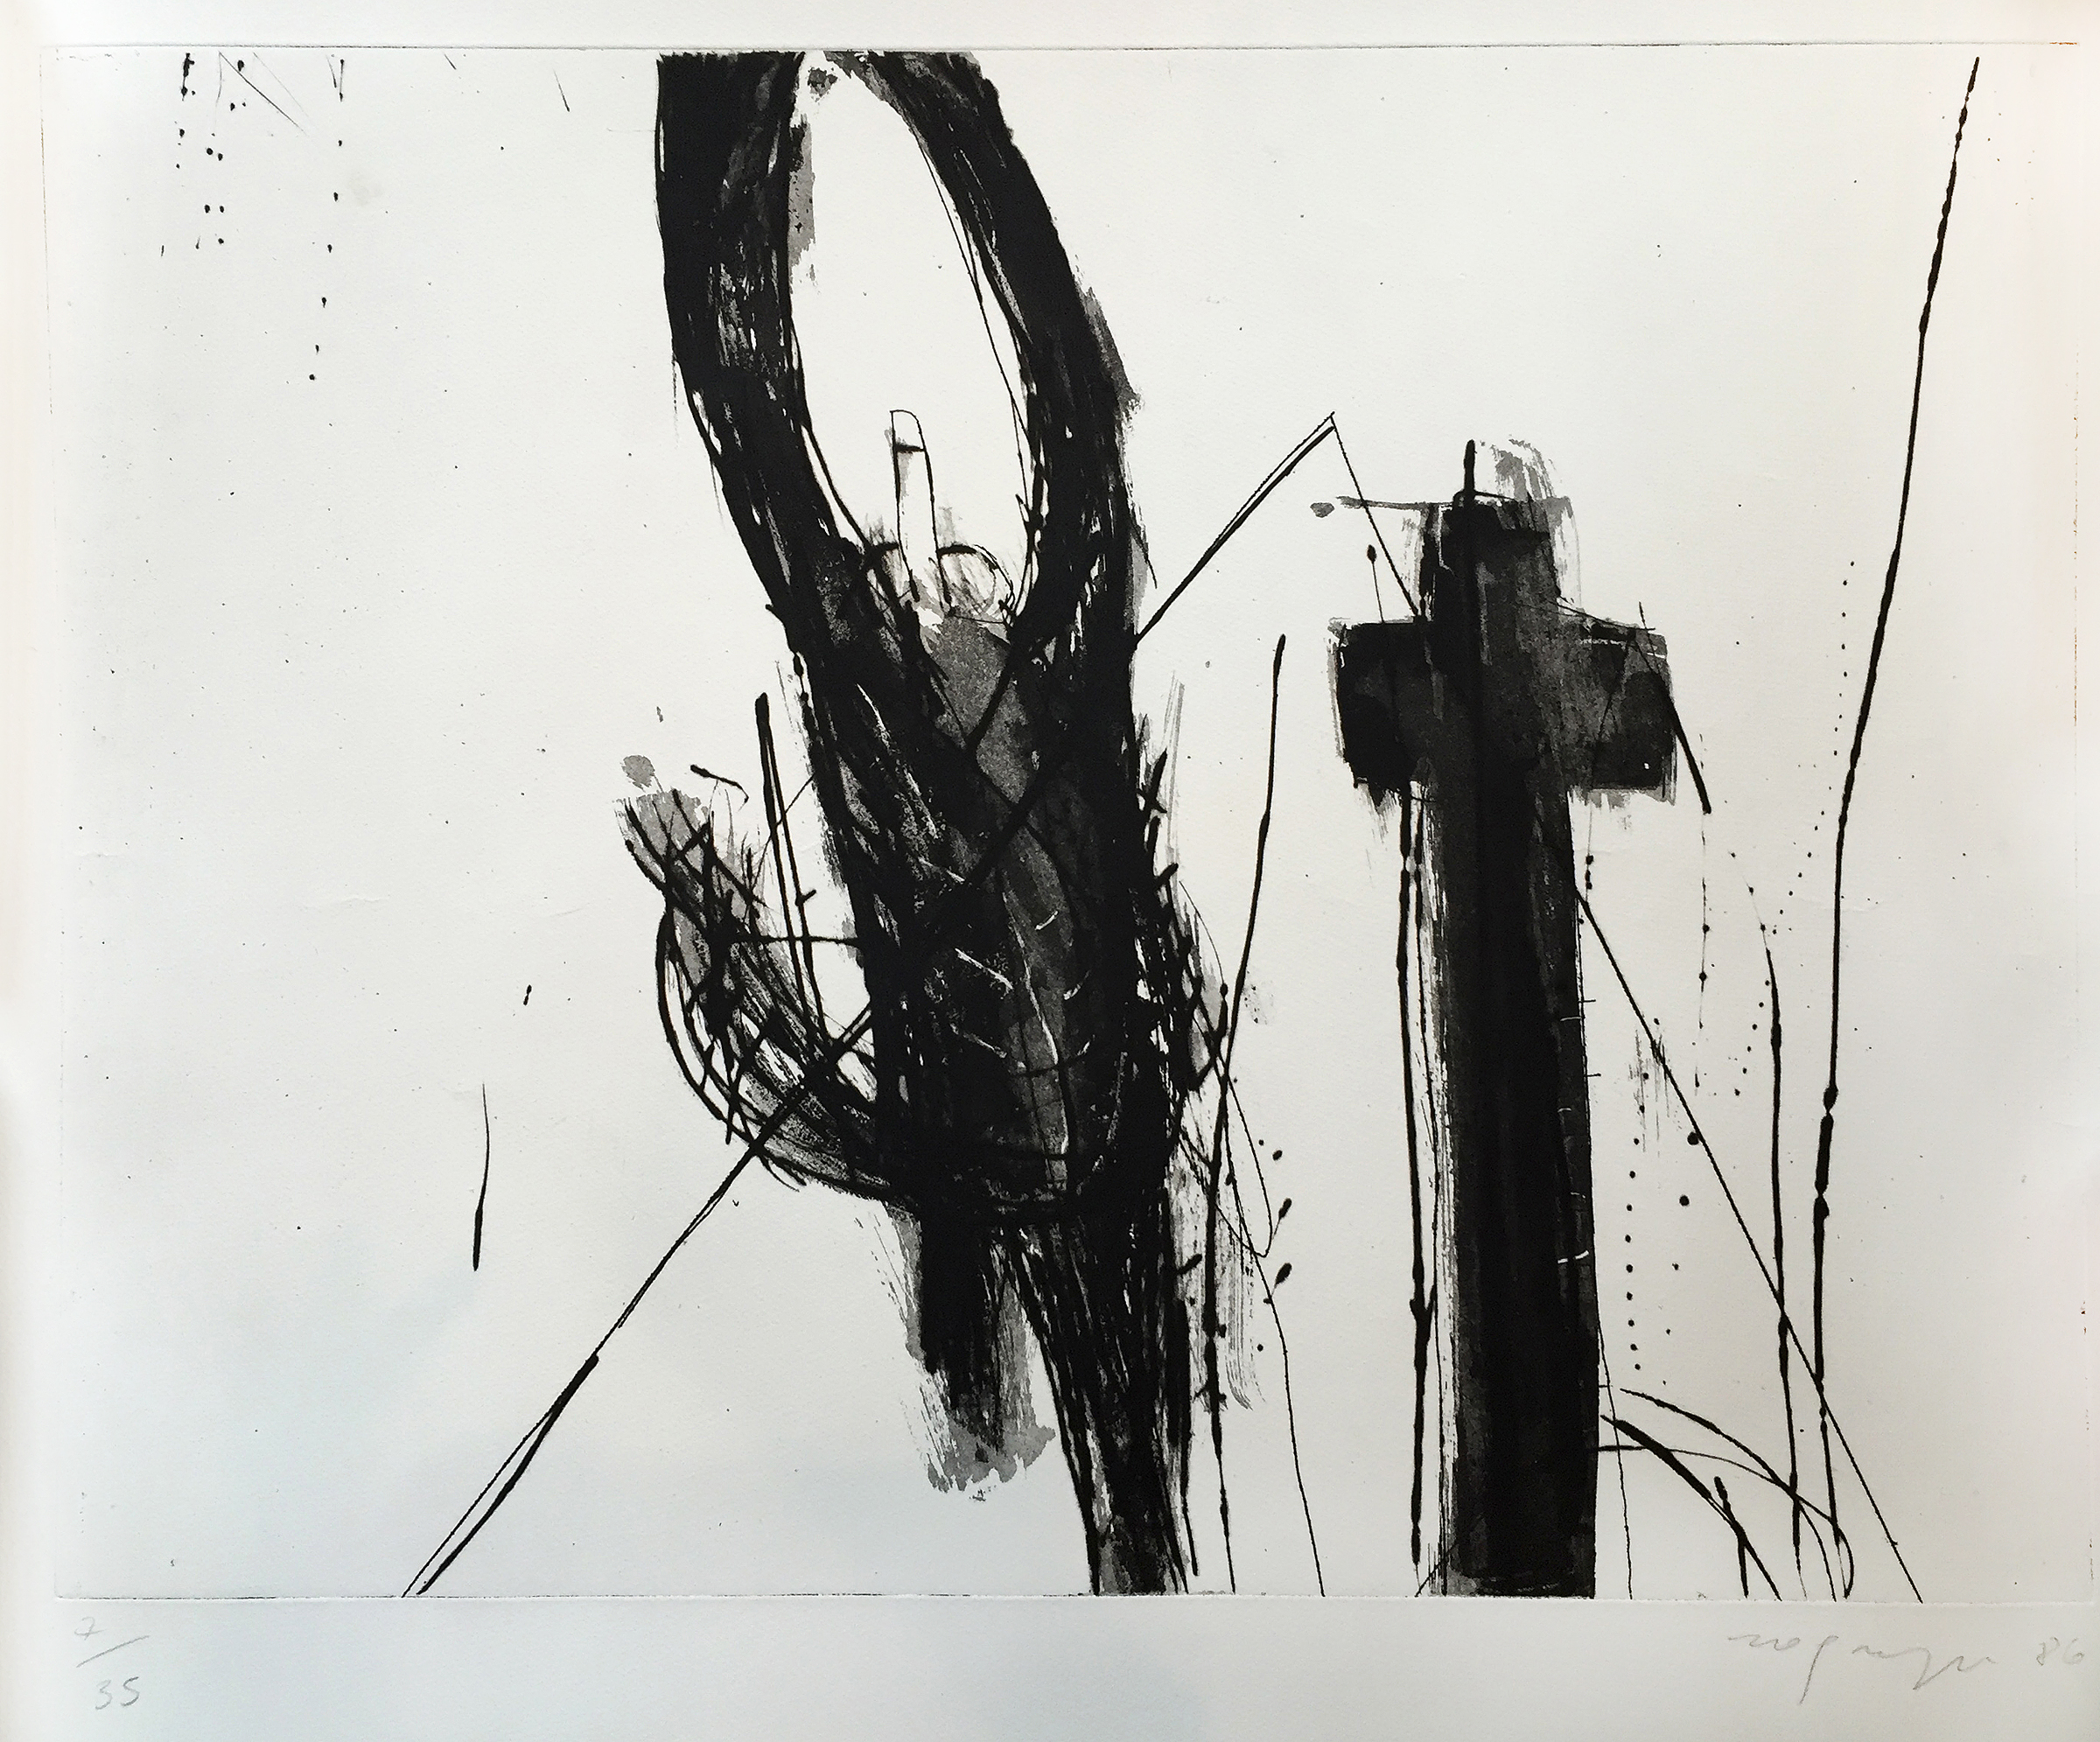 Untitled (ed. 7 of 35), 1986, 25.75 x 28.5 inches, Etching